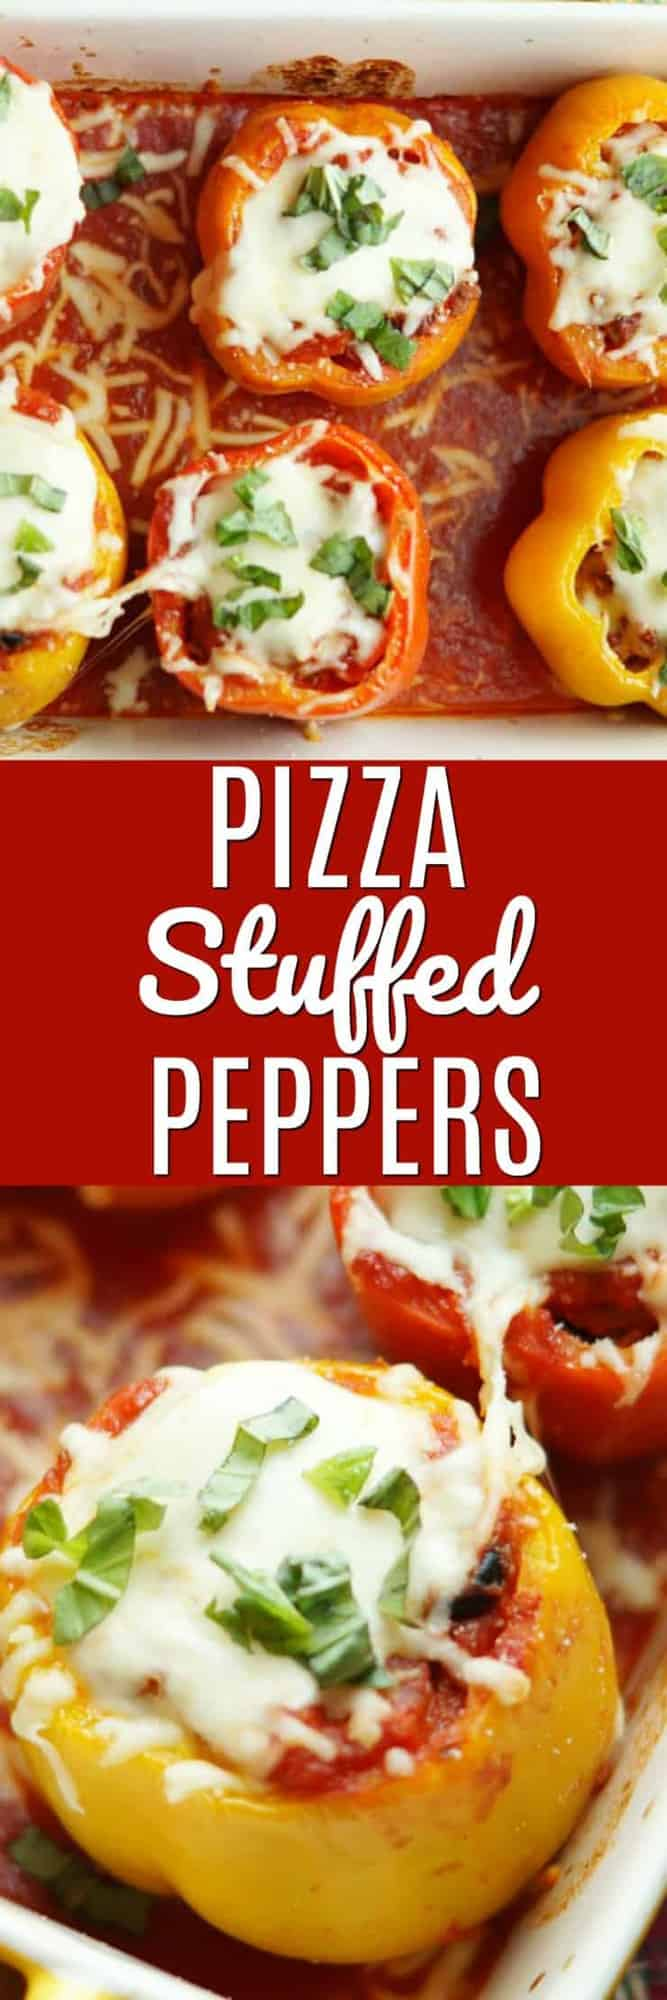 Supreme Pizza Stuffed Peppers have all the flavors of a supreme pizza, made healthier then stuffed into pepper form! This delicious take on the traditional stuffed pepper will have your entire family cleaning their plates!